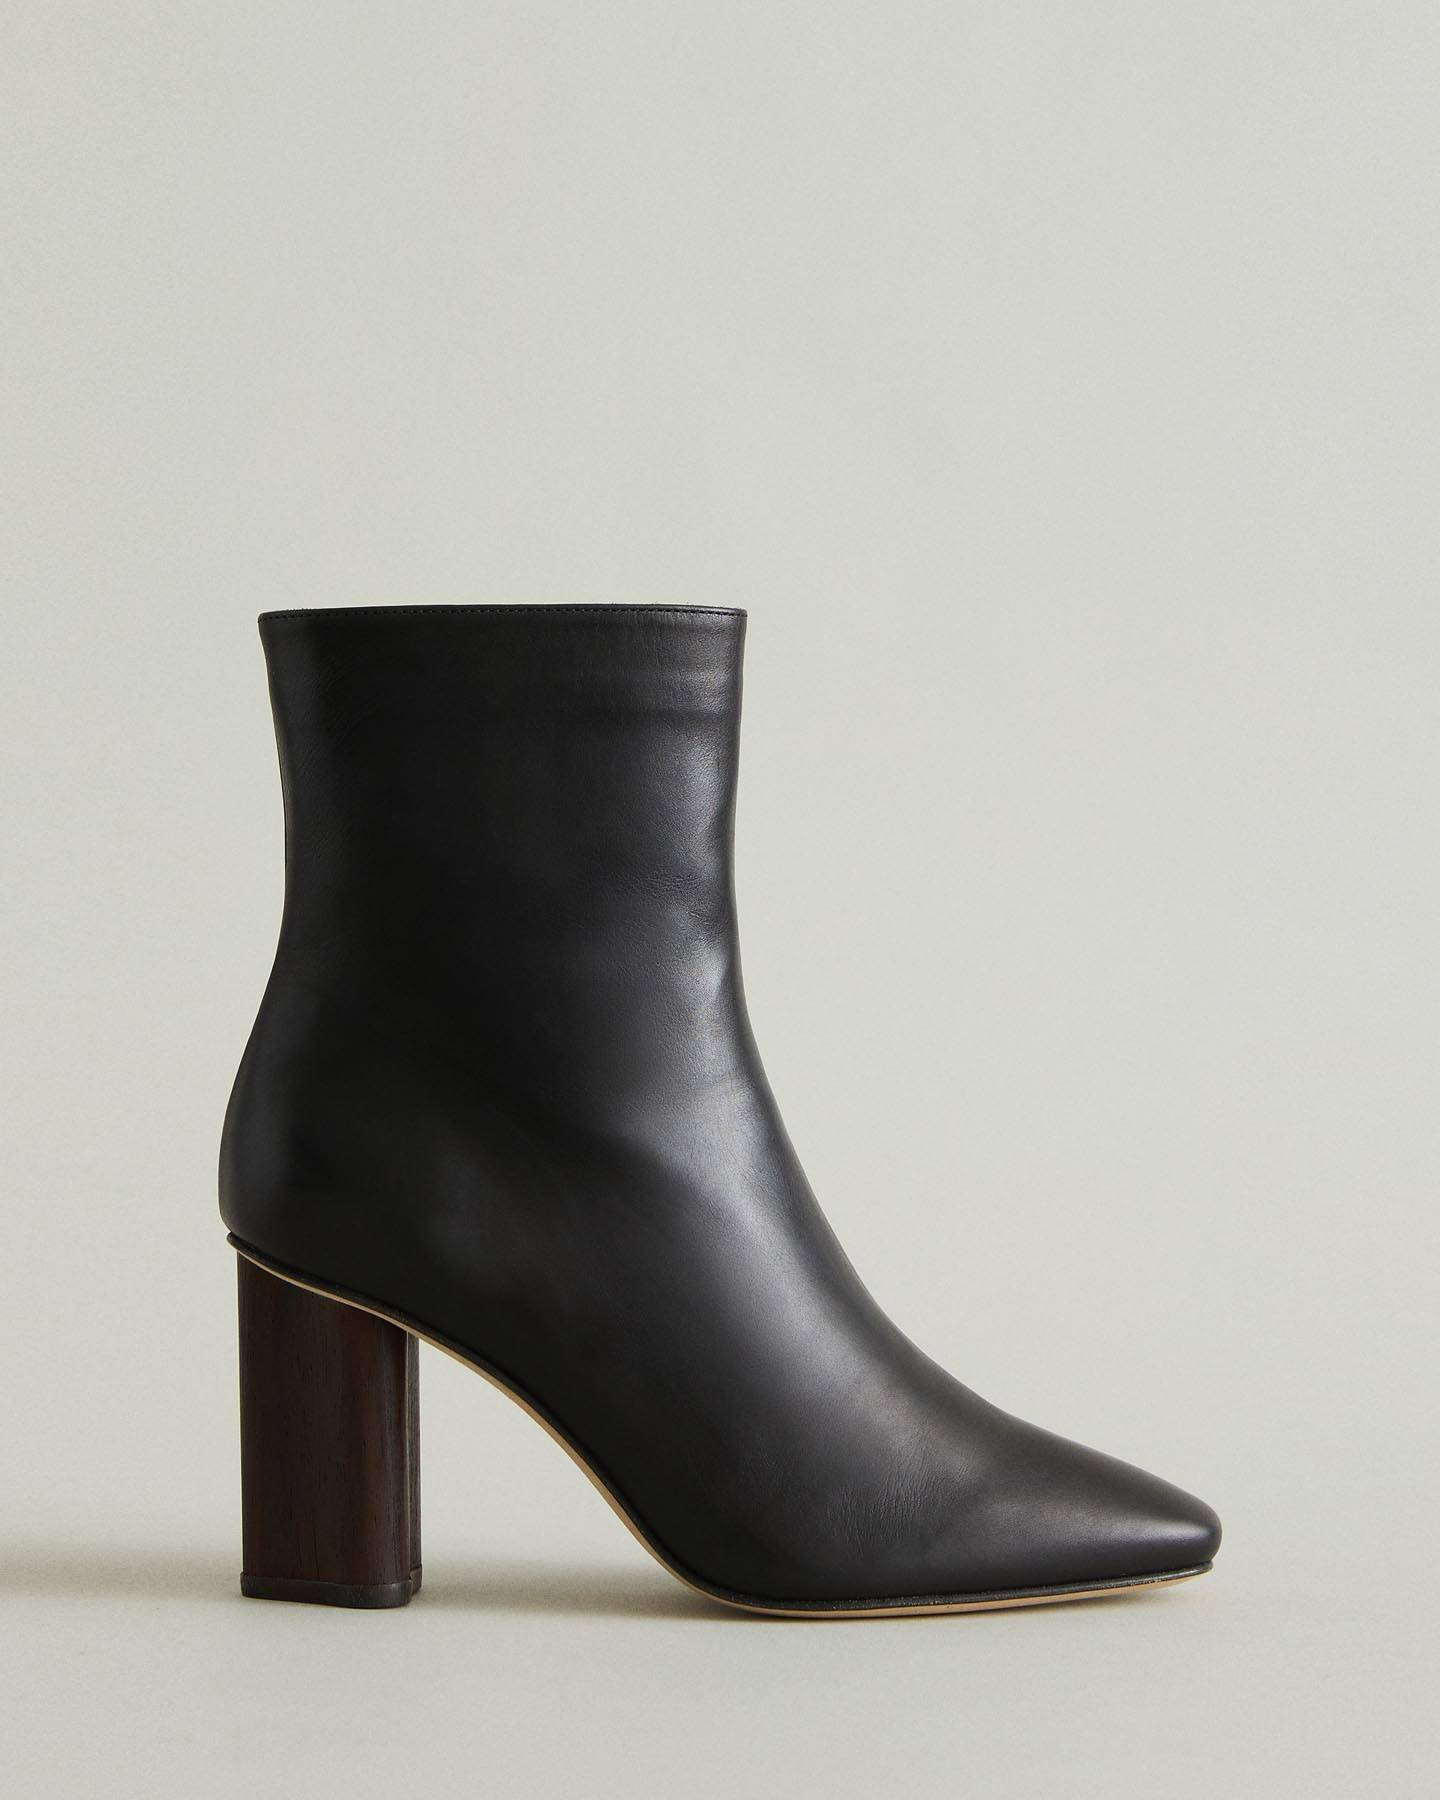 https://ca.wantapothecary.com/products/lisa-heeled-ankle-boot?utm_medium=wlesite